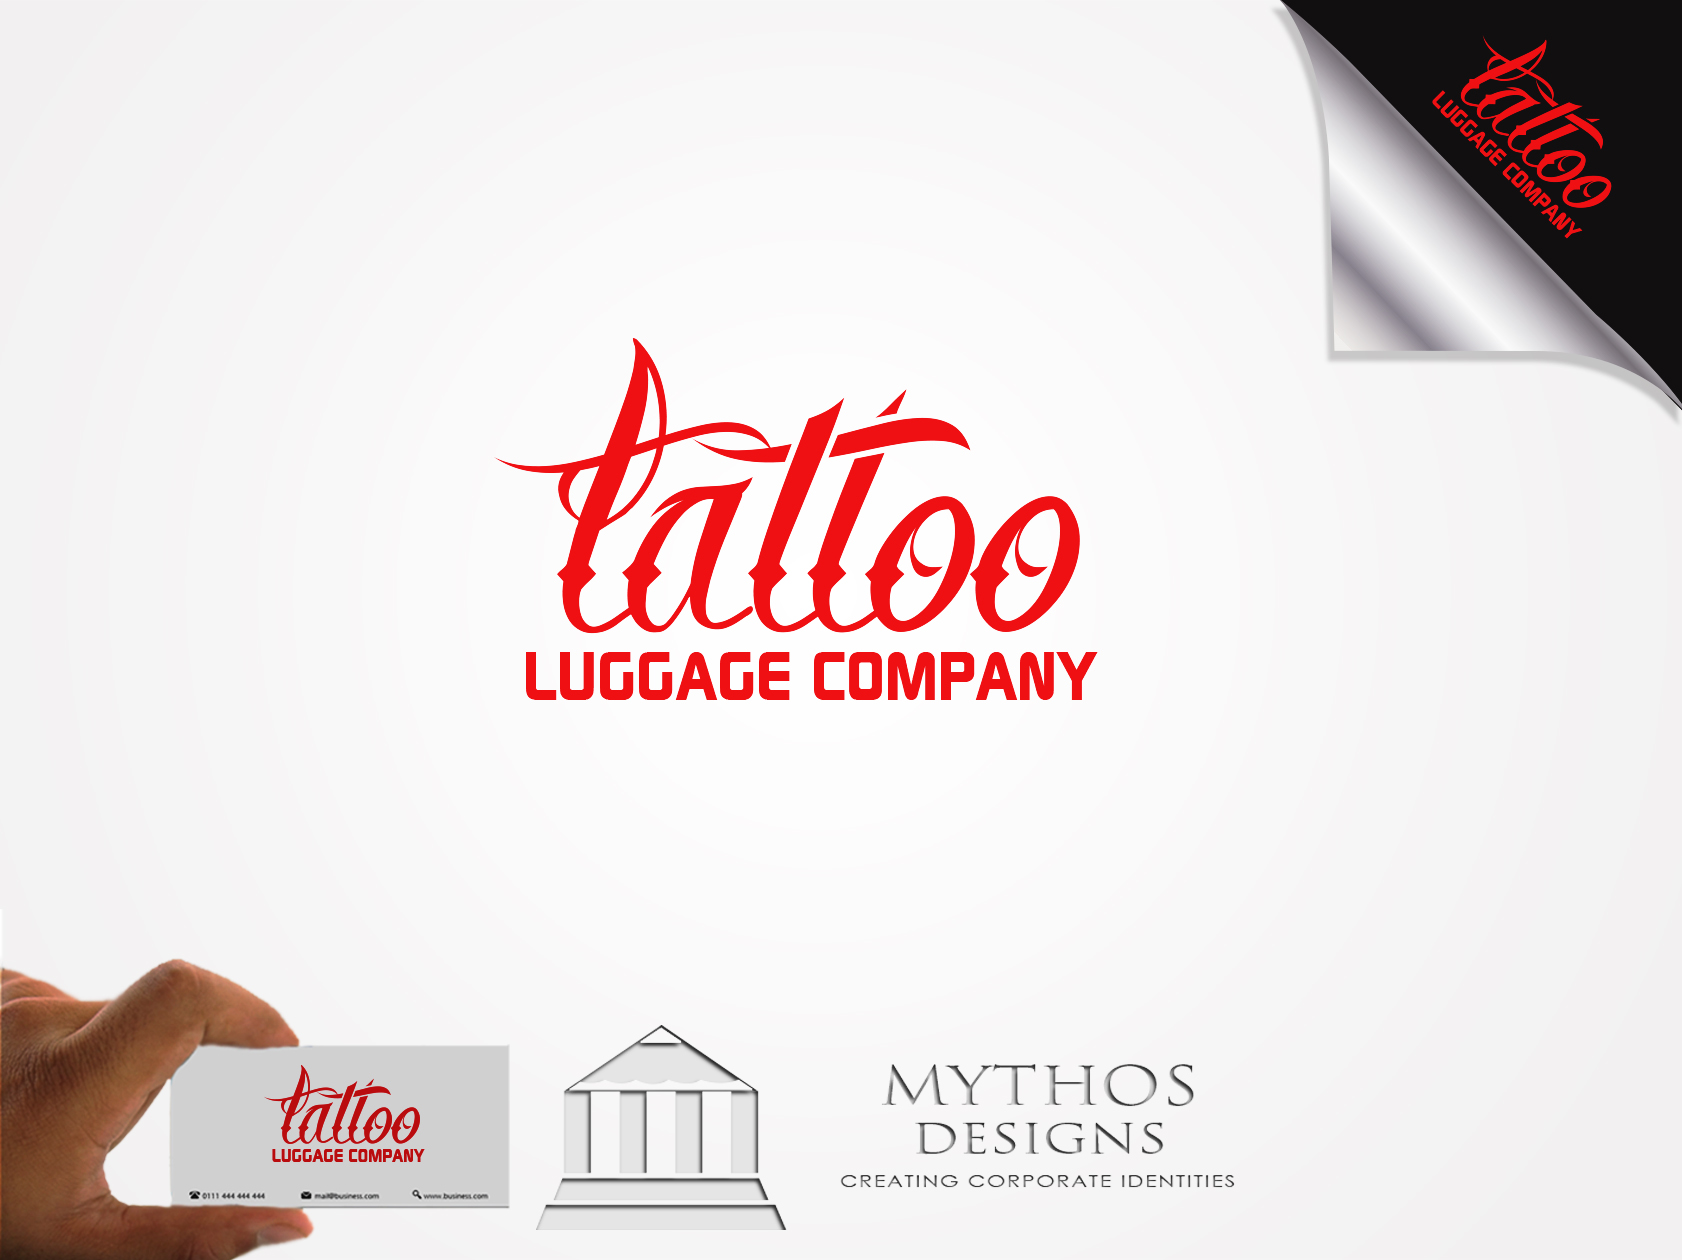 Logo Design by Mythos Designs - Entry No. 133 in the Logo Design Contest Artistic Logo Design for Tattoo Luggage Company.